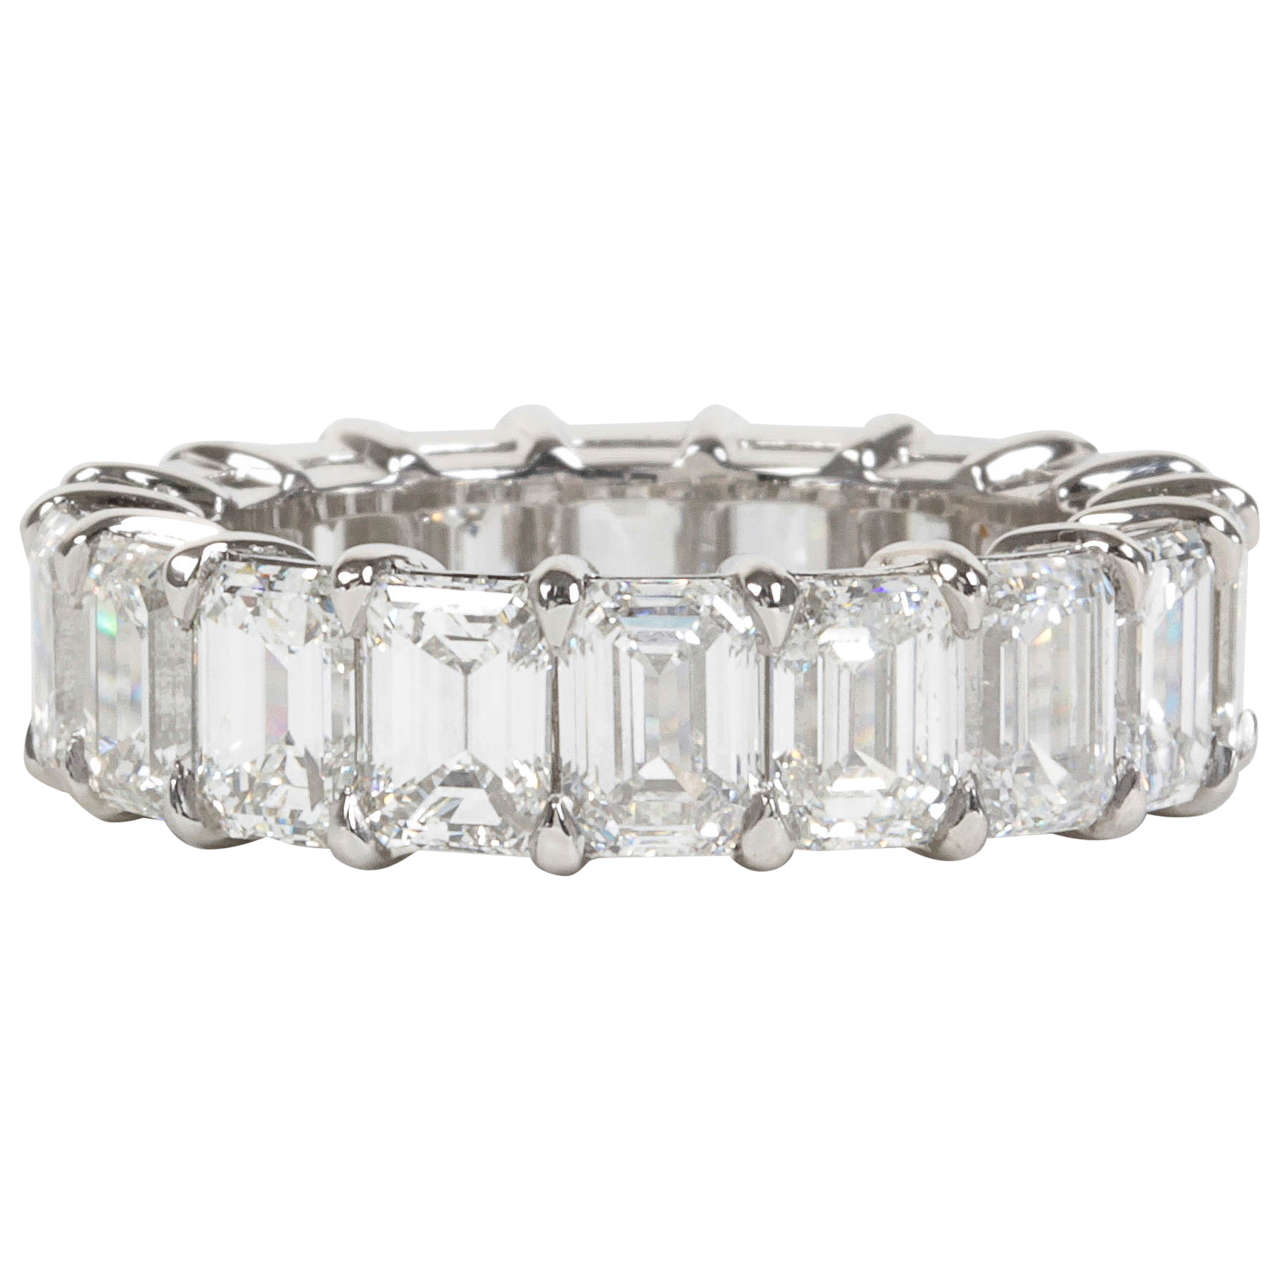 9 Carat Emerald Cut Diamond Platinum Eternity Band For Sale